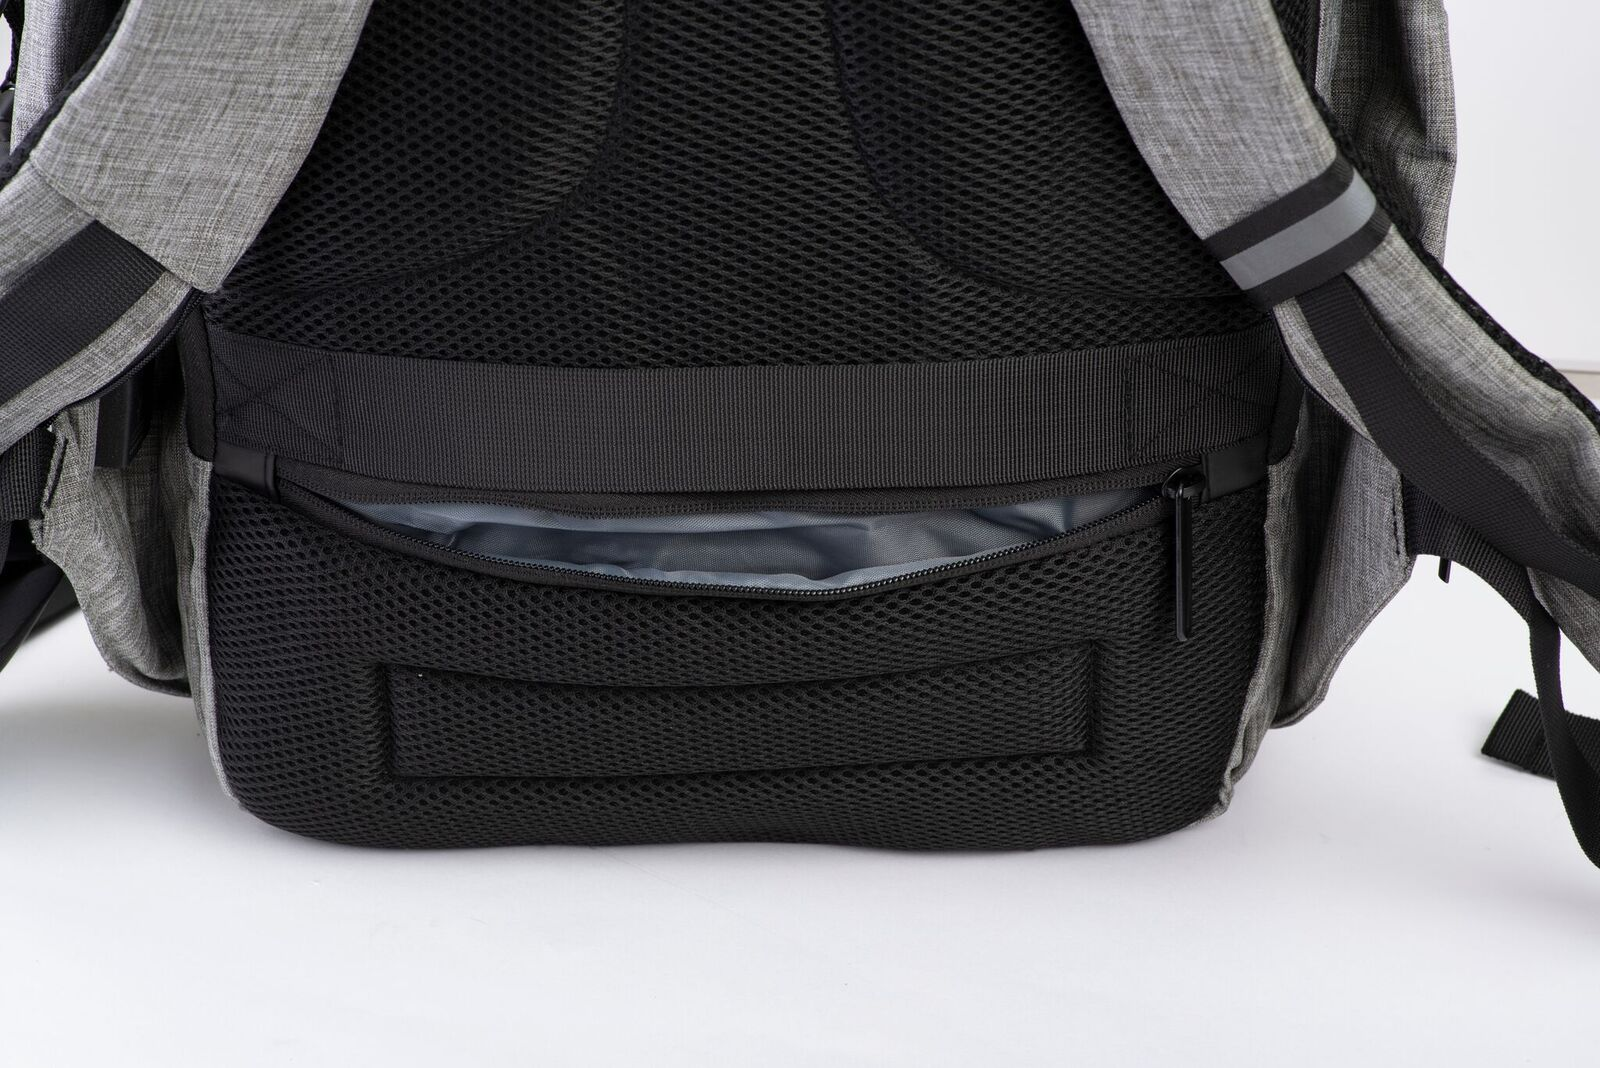 back view of snug backpack zipper